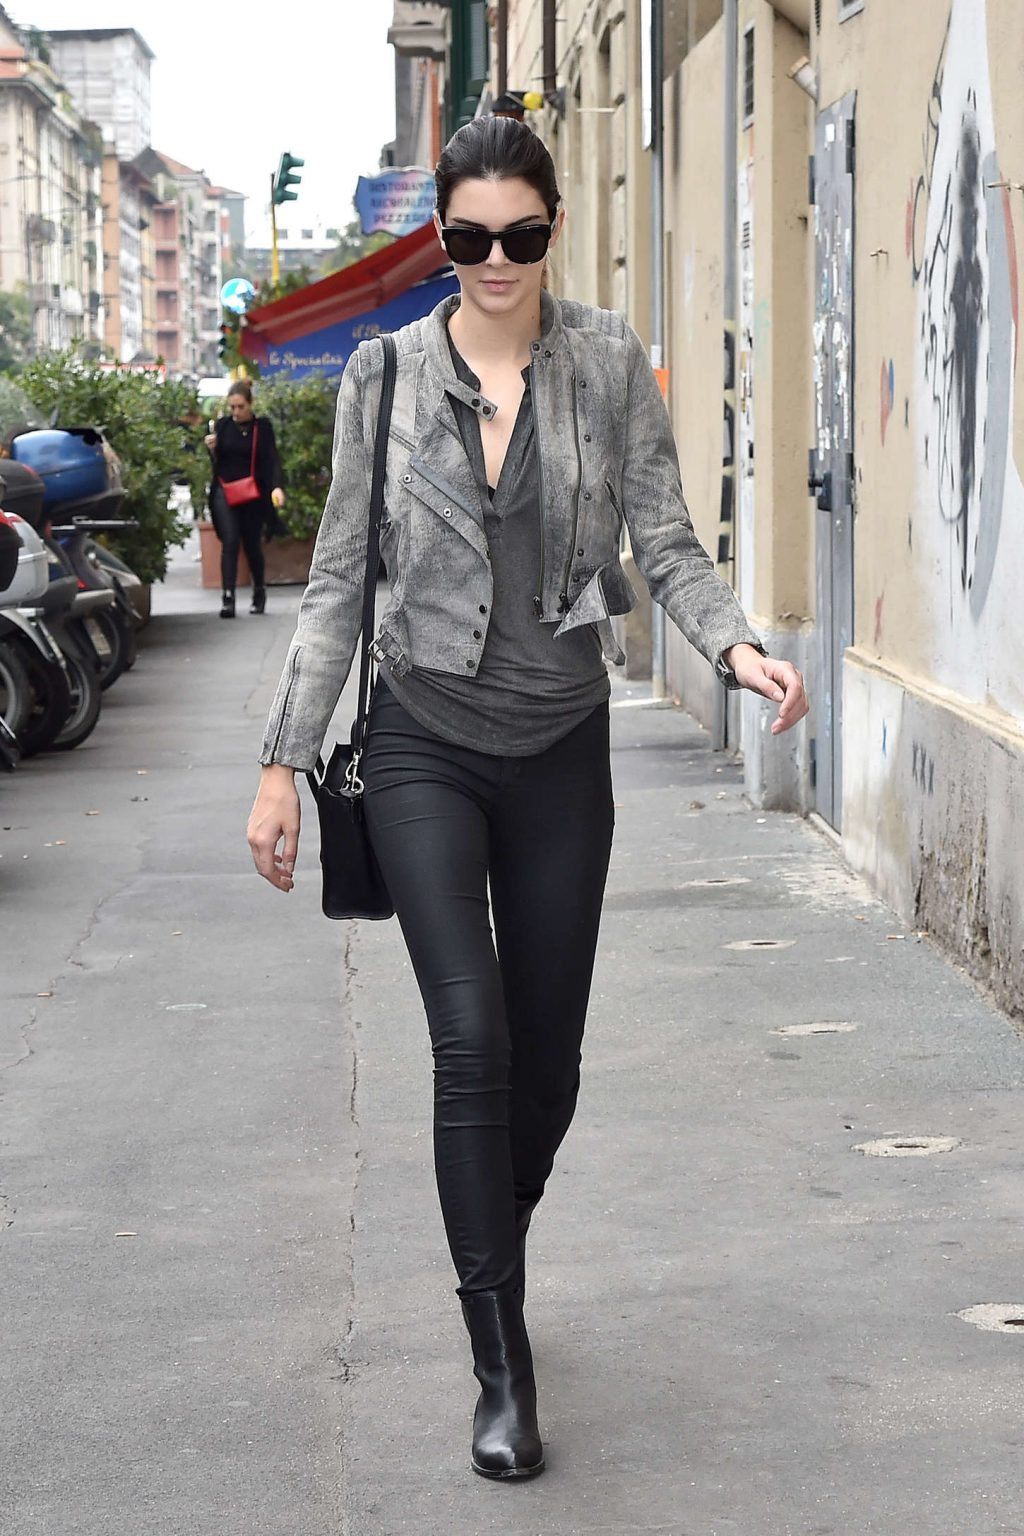 Kendall Jenner in Tights at Milan Fashion Week 2014